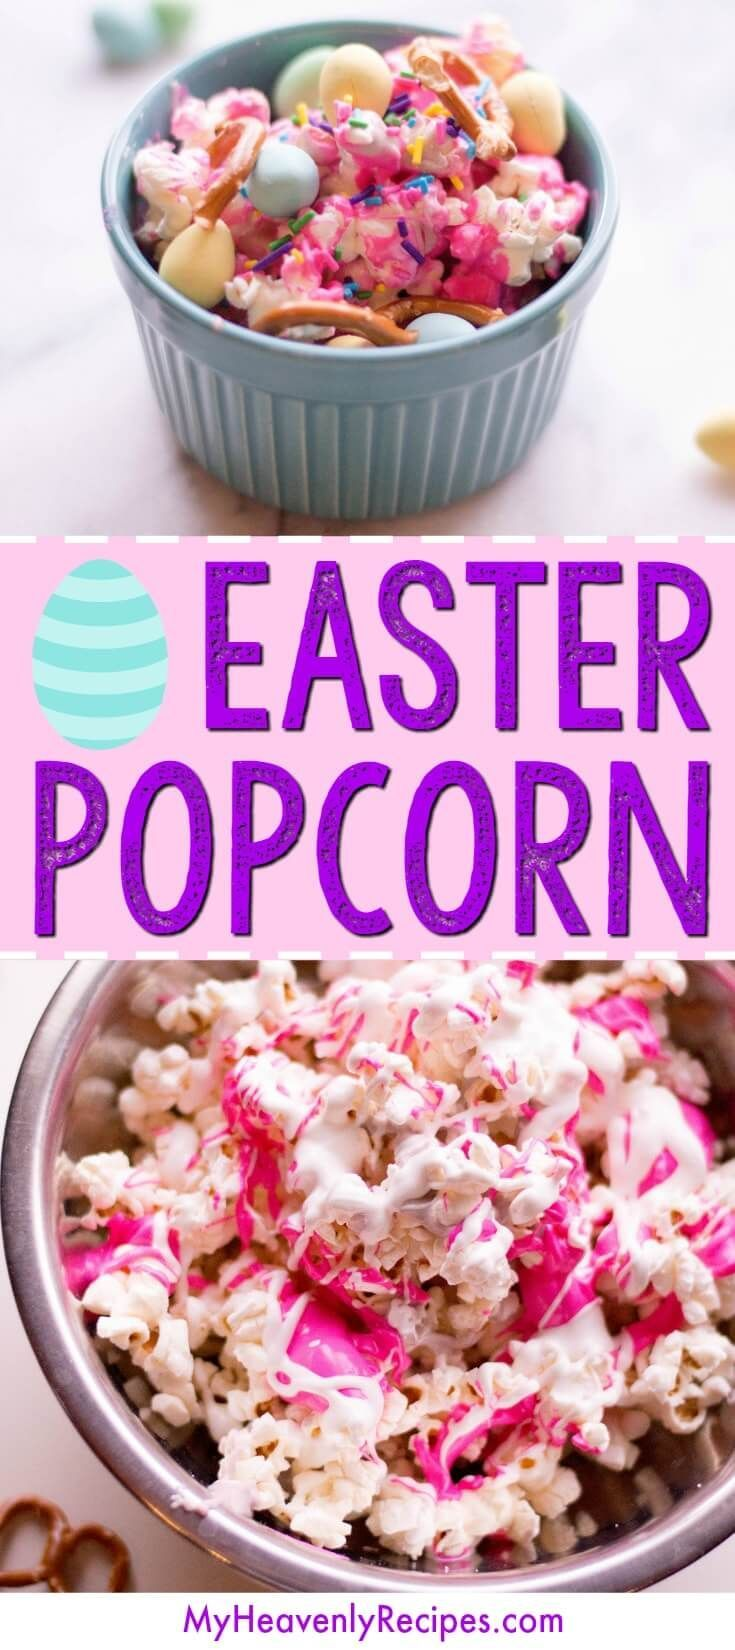 Pin by my heavenly recipes on food mouthwatering recipes group pin by my heavenly recipes on food mouthwatering recipes group board pinterest flavored popcorn popcorn recipes and food gifts negle Choice Image